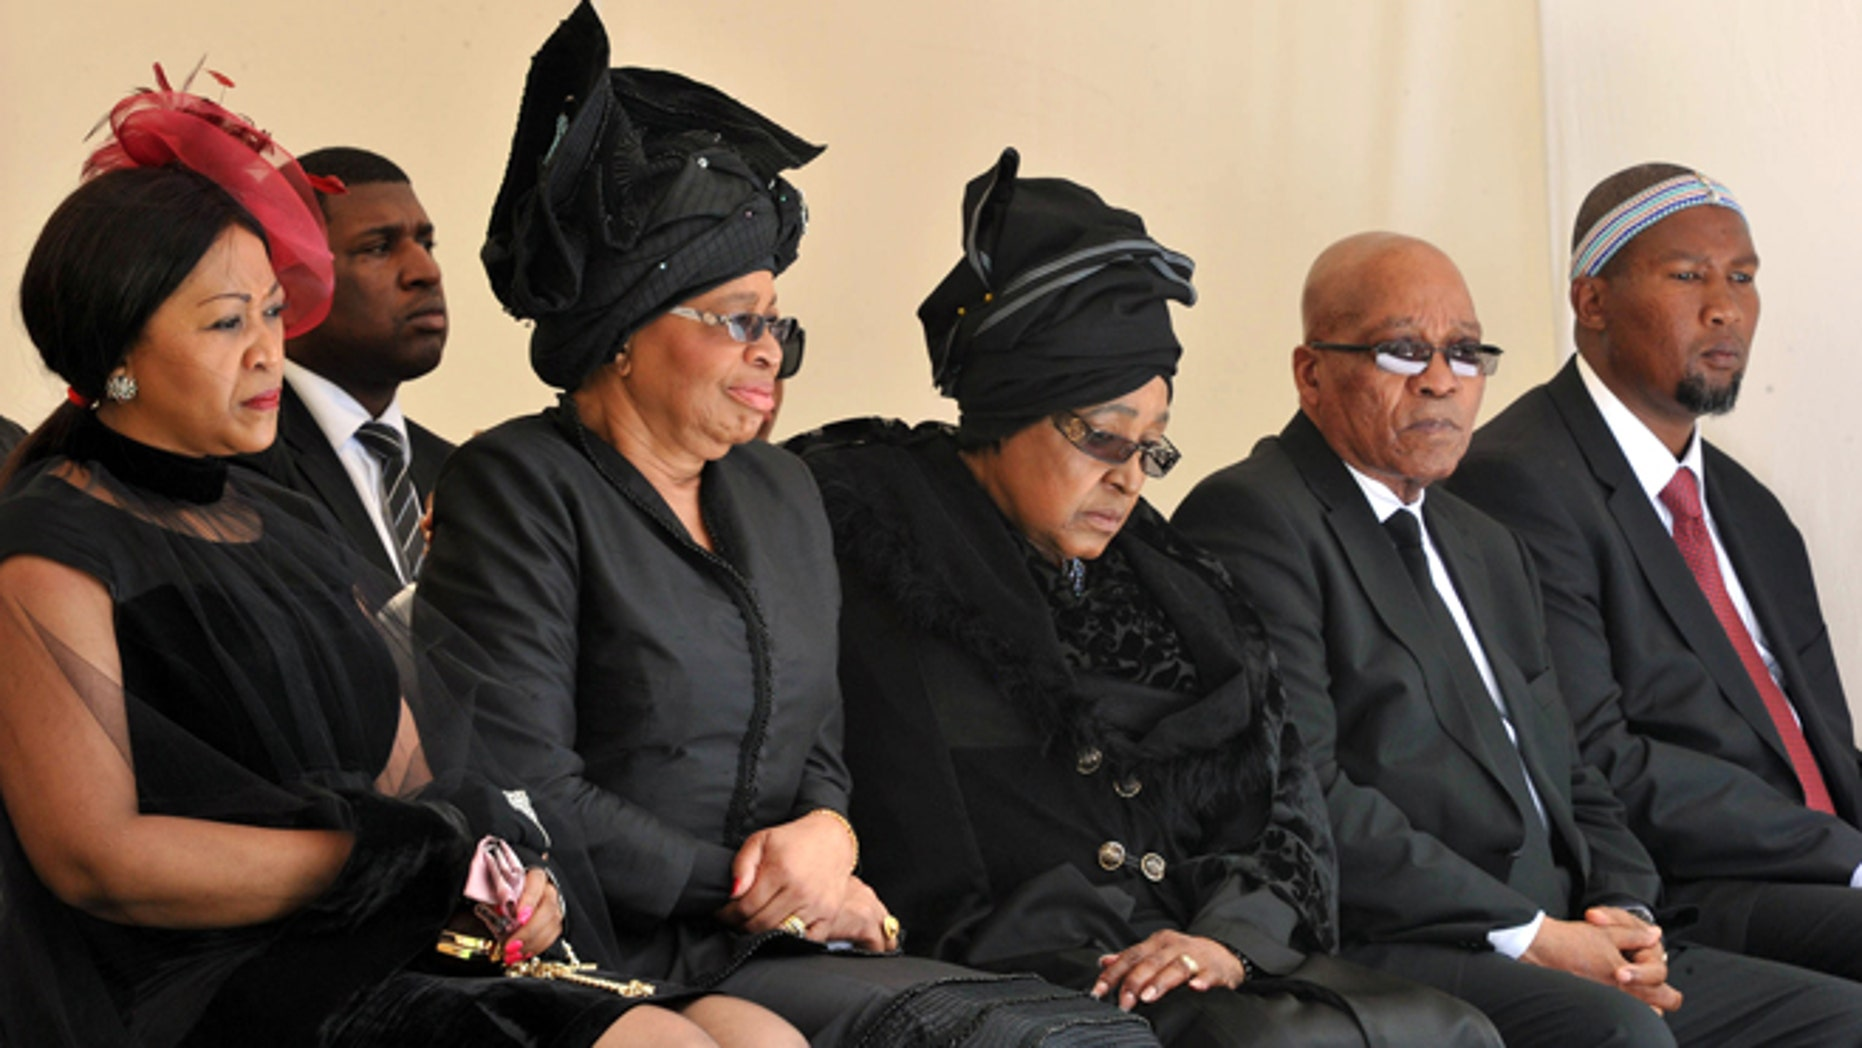 Dec. 15, 2013: From left: Tobeka Zuma, Nelson Mandelas widow Graca Machel, Winnie Madikizela-Mandela, Nelson Mandela's former wife, South African President Jacob Zuma, and Mandela's grandson Mandla Mandela watch as former South African President Nelson Mandela's casket arrives at his burial site following his funeral service in Qunu, South Africa.